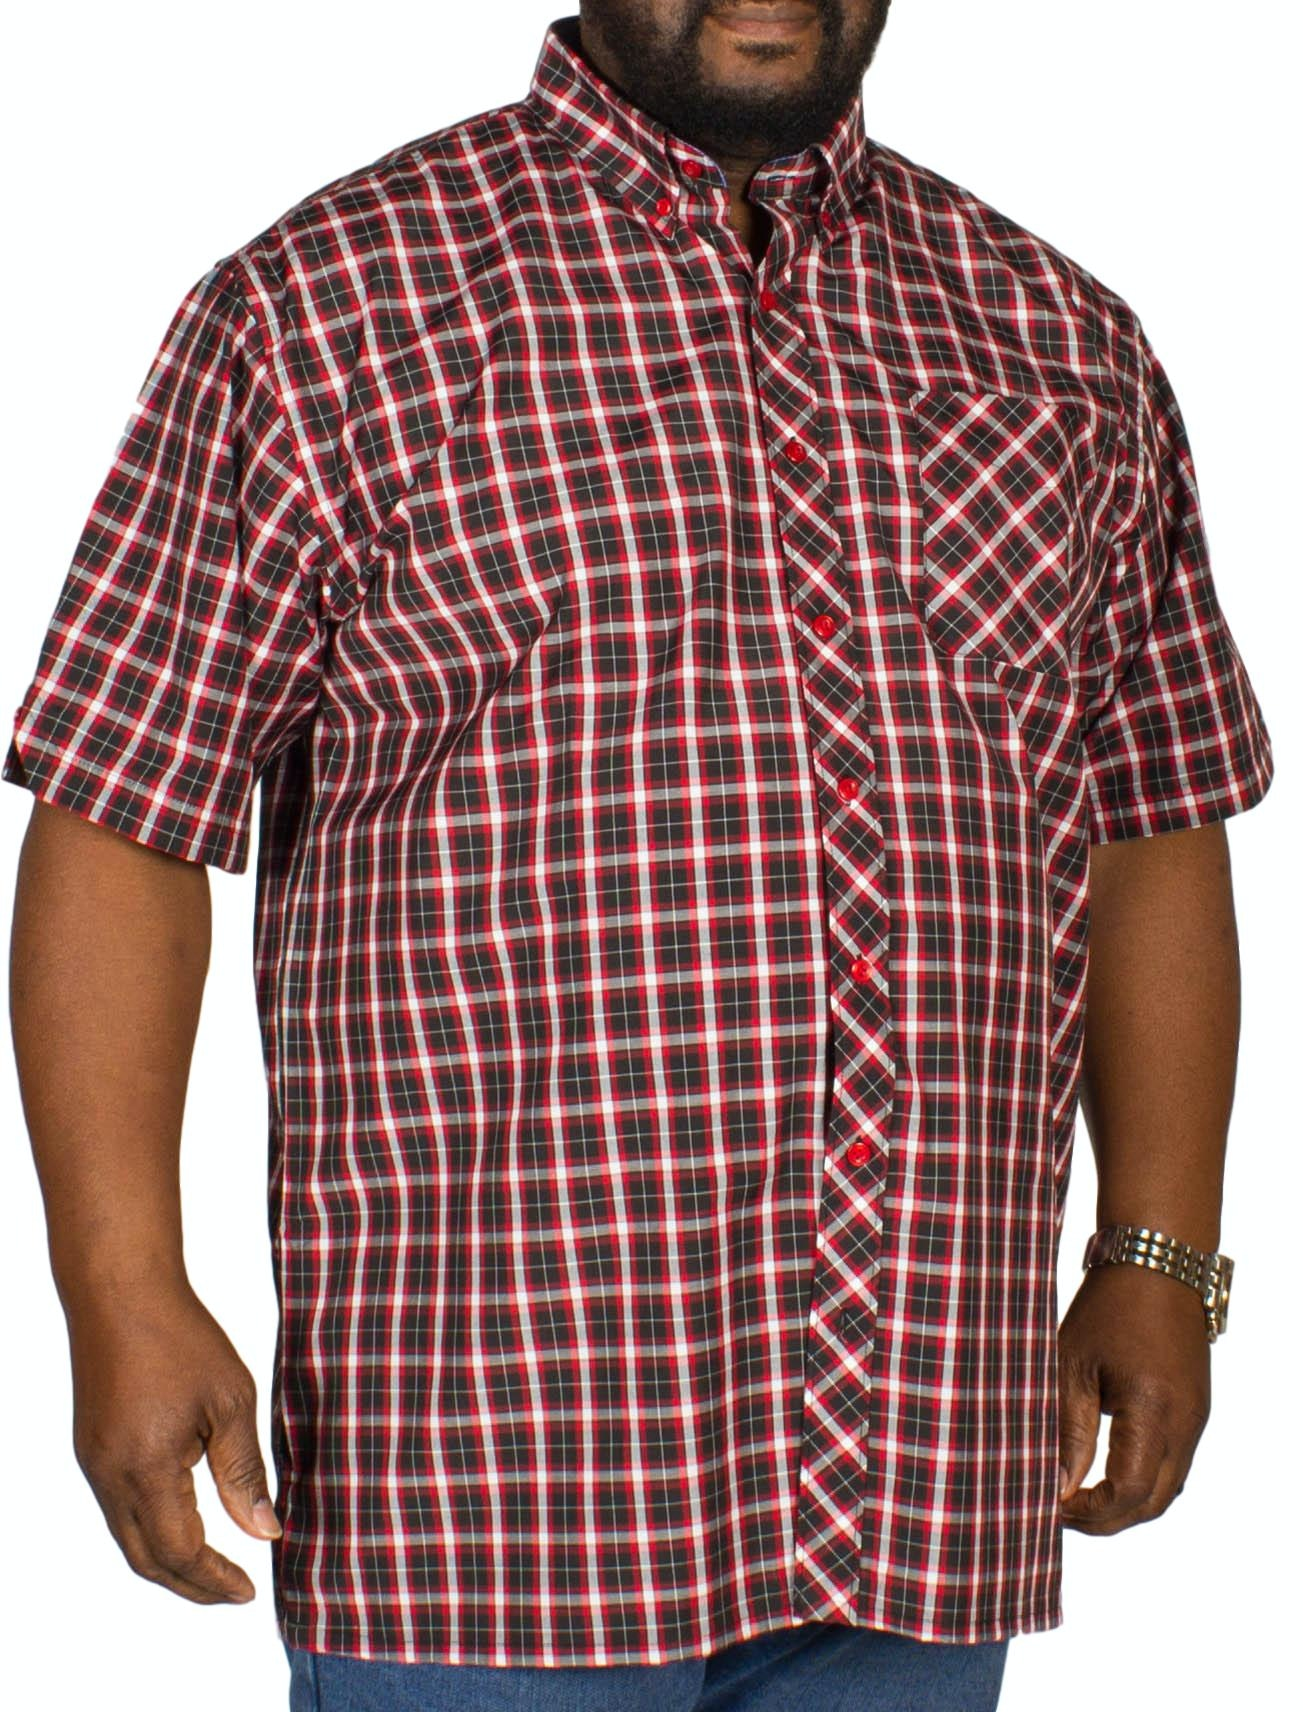 Espionage Check Short Sleeve Shirt Black/Red